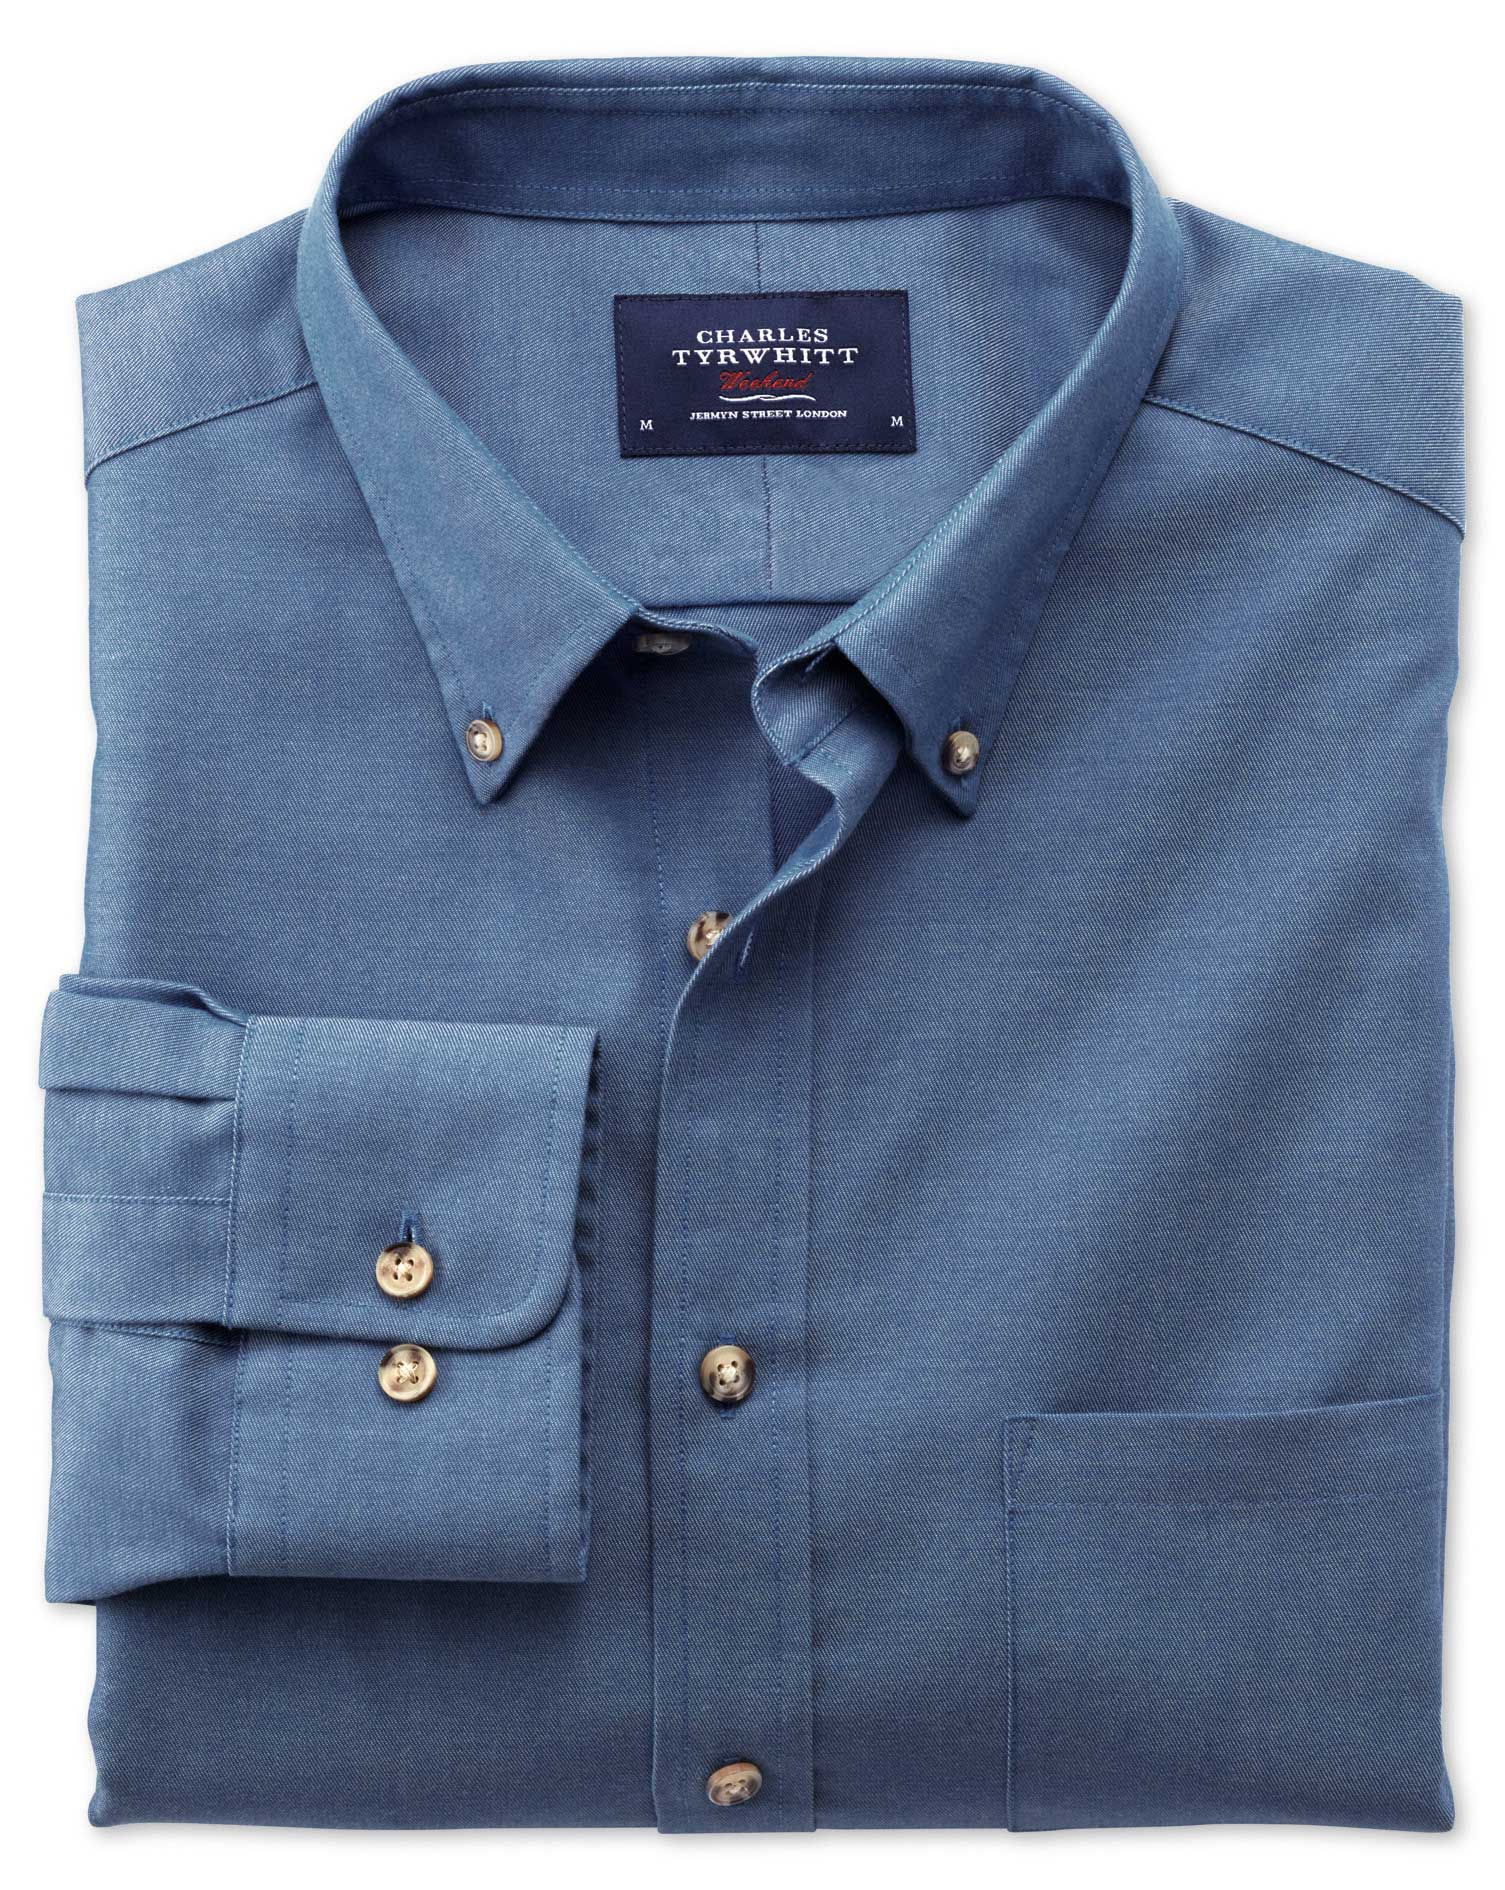 Extra Slim Fit Non-Iron Twill Blue Cotton Shirt Single Cuff Size Medium by Charles Tyrwhitt